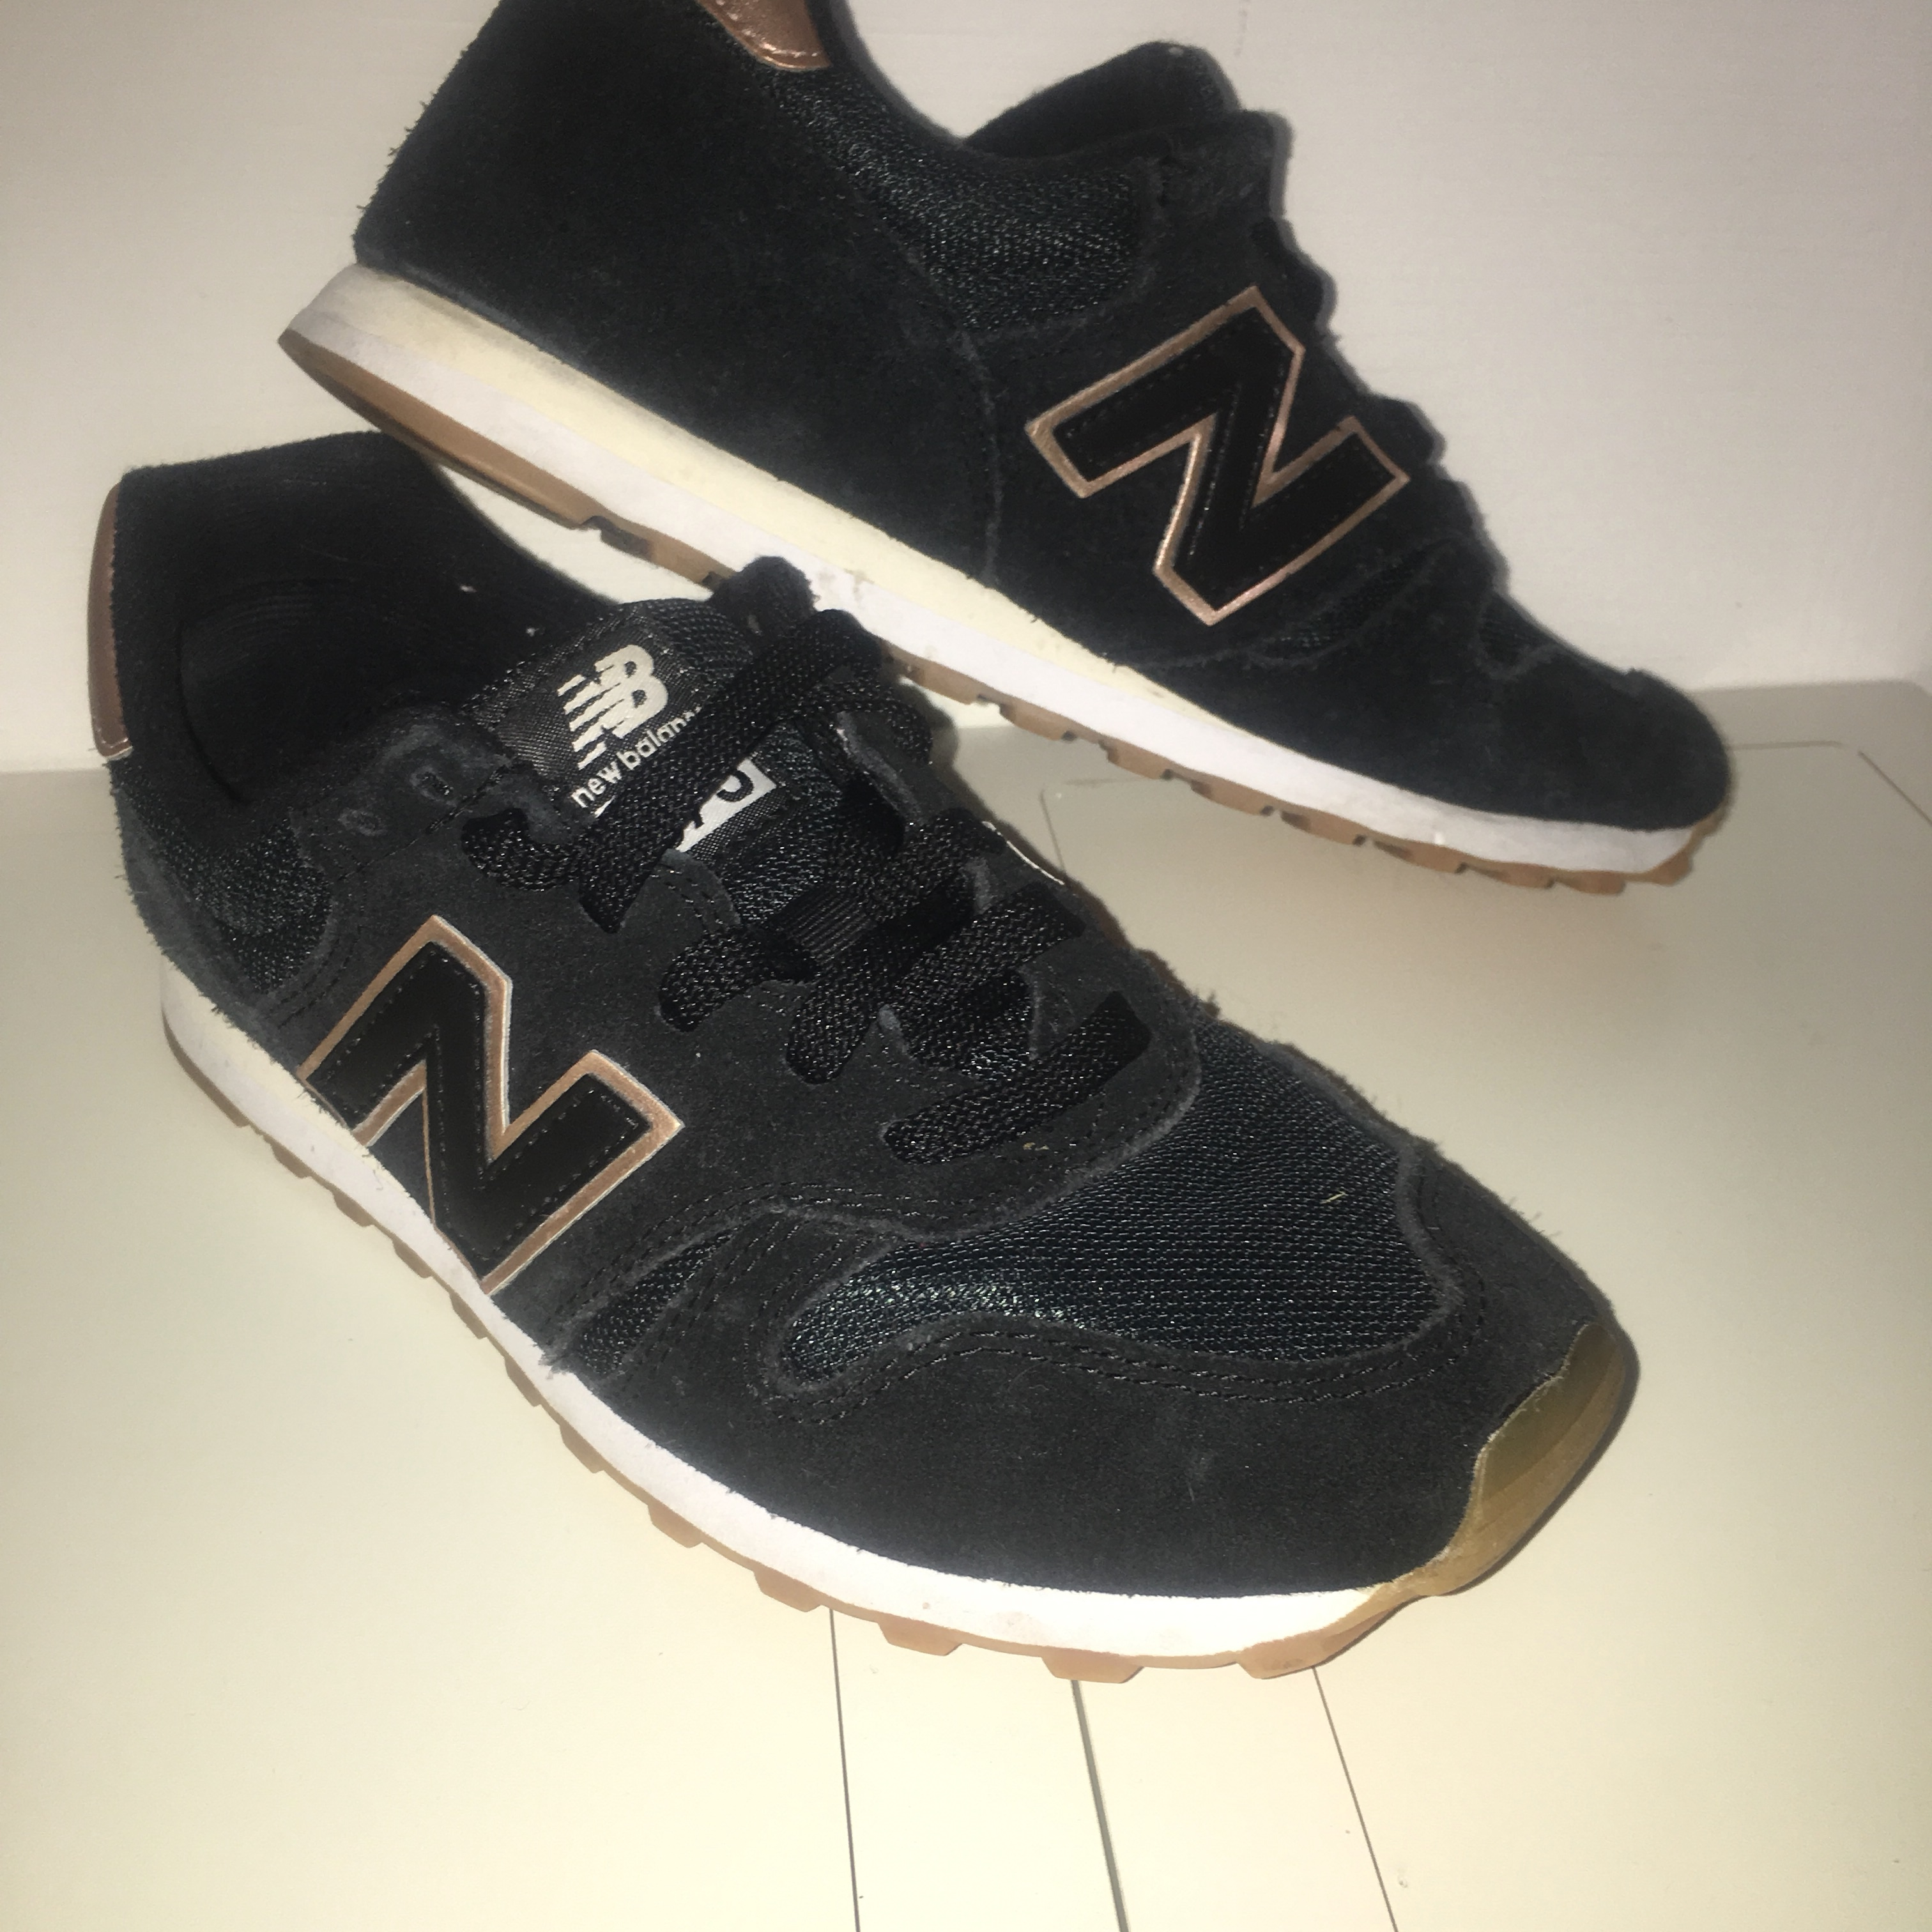 black and rose gold new balance 373 's